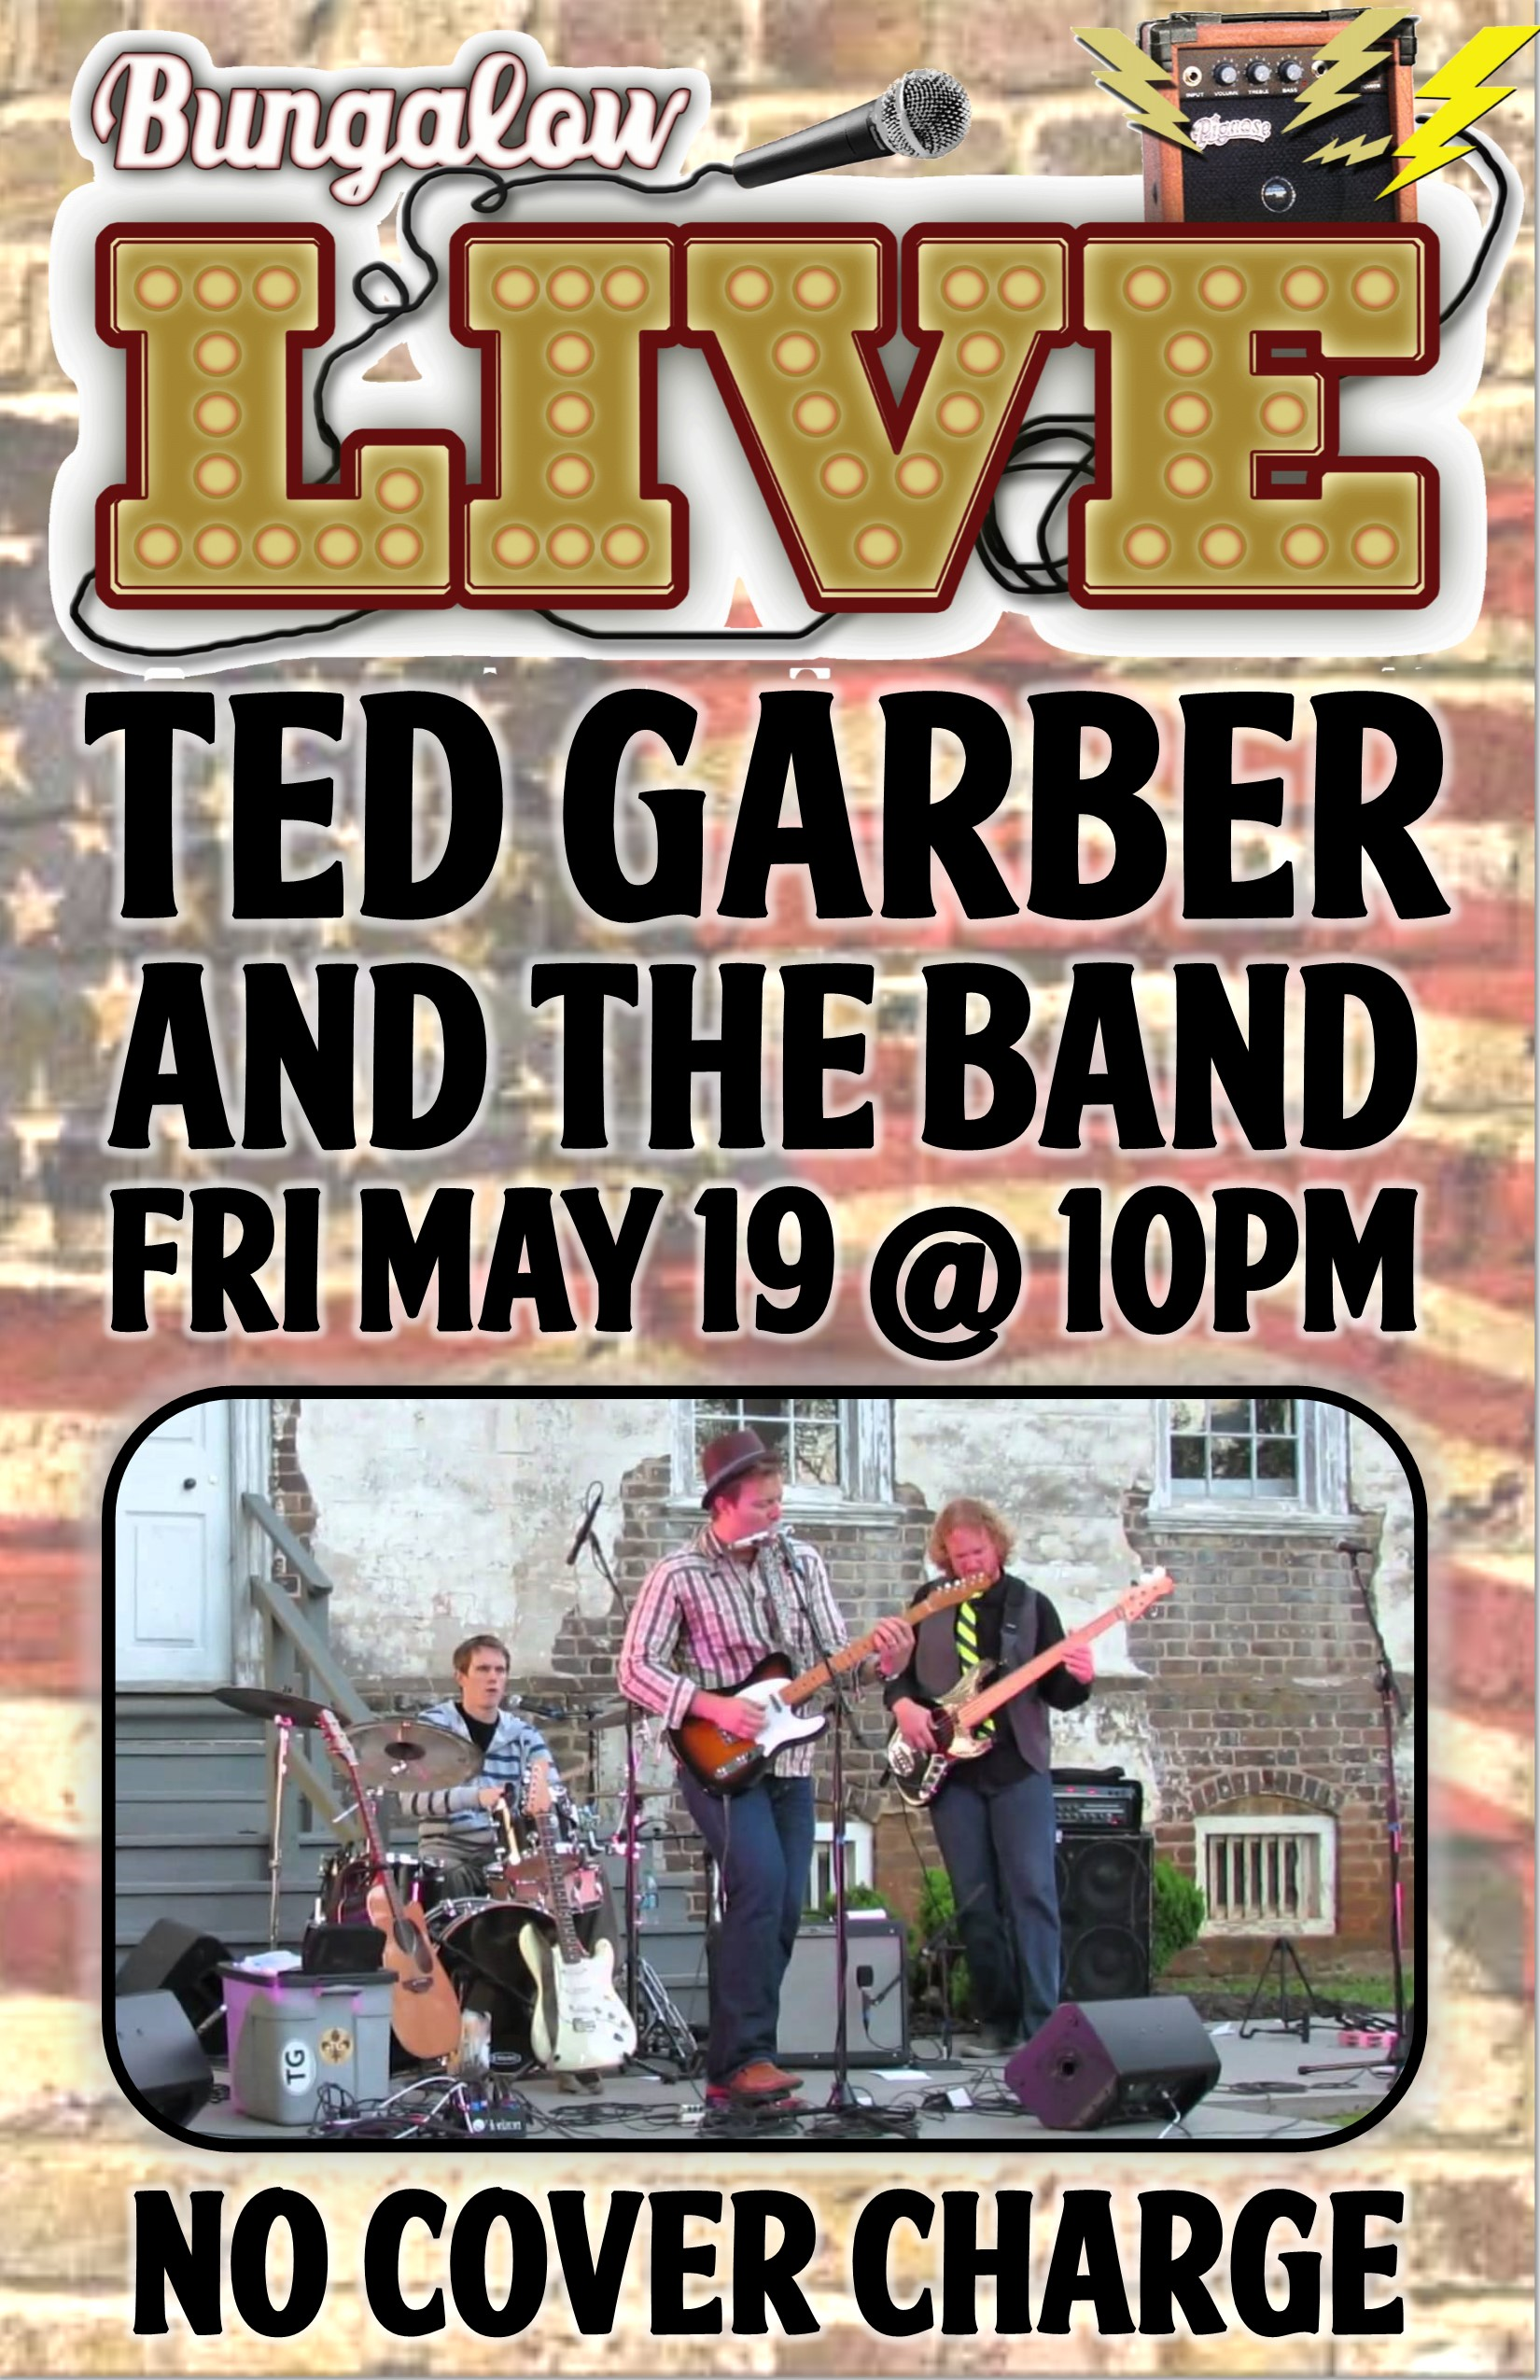 Ted garber band CH 11X17